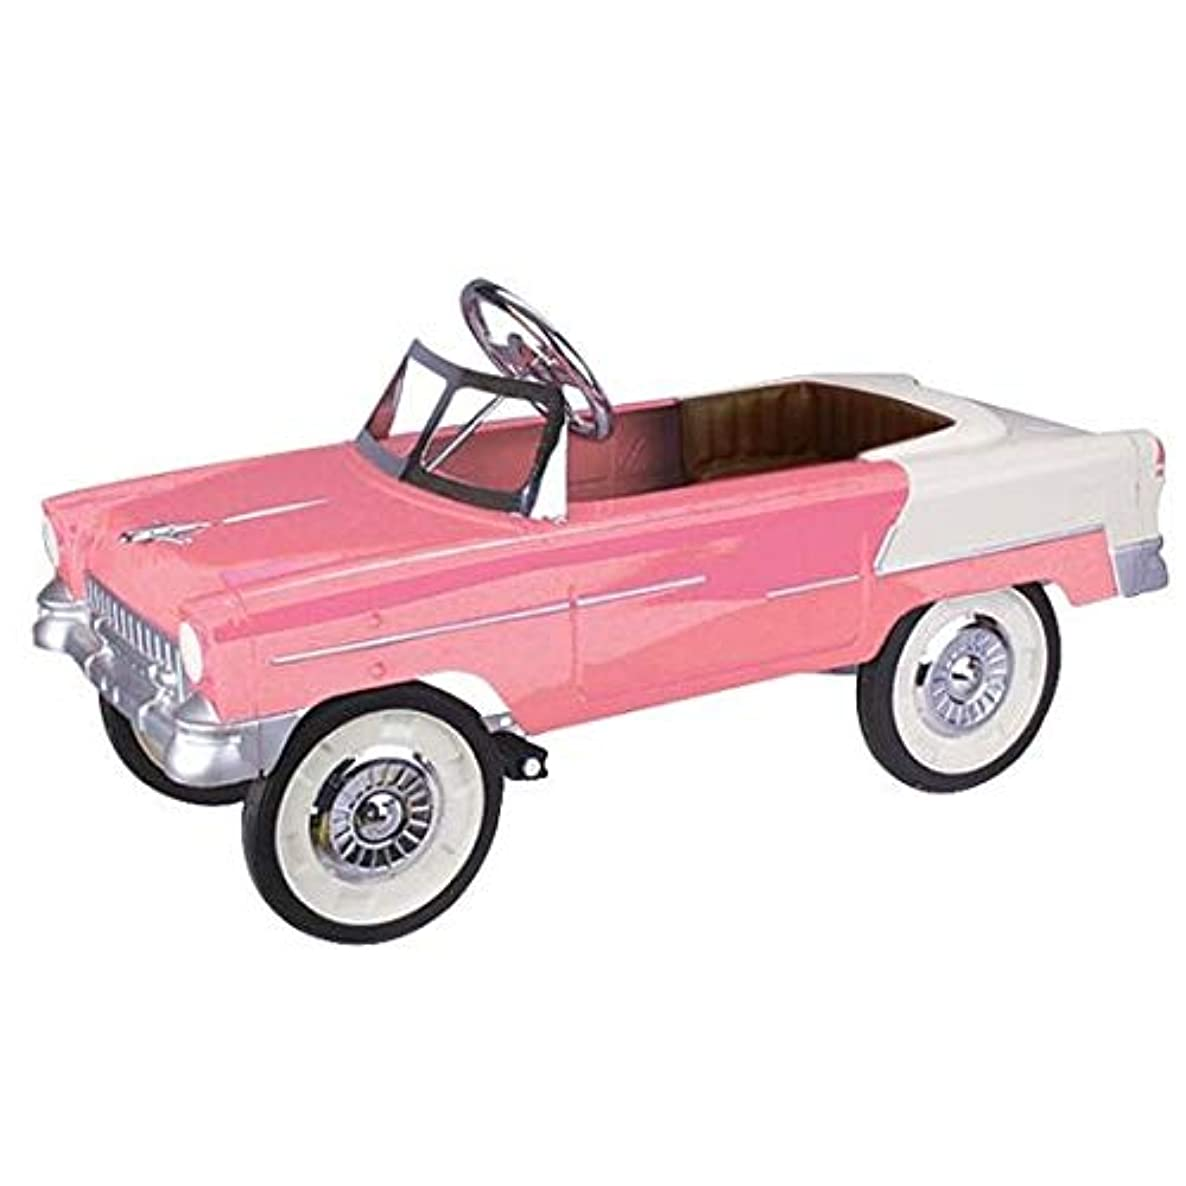 Blue Diamond Classics 1955 Pink and White Fits Chevy Pedal Car